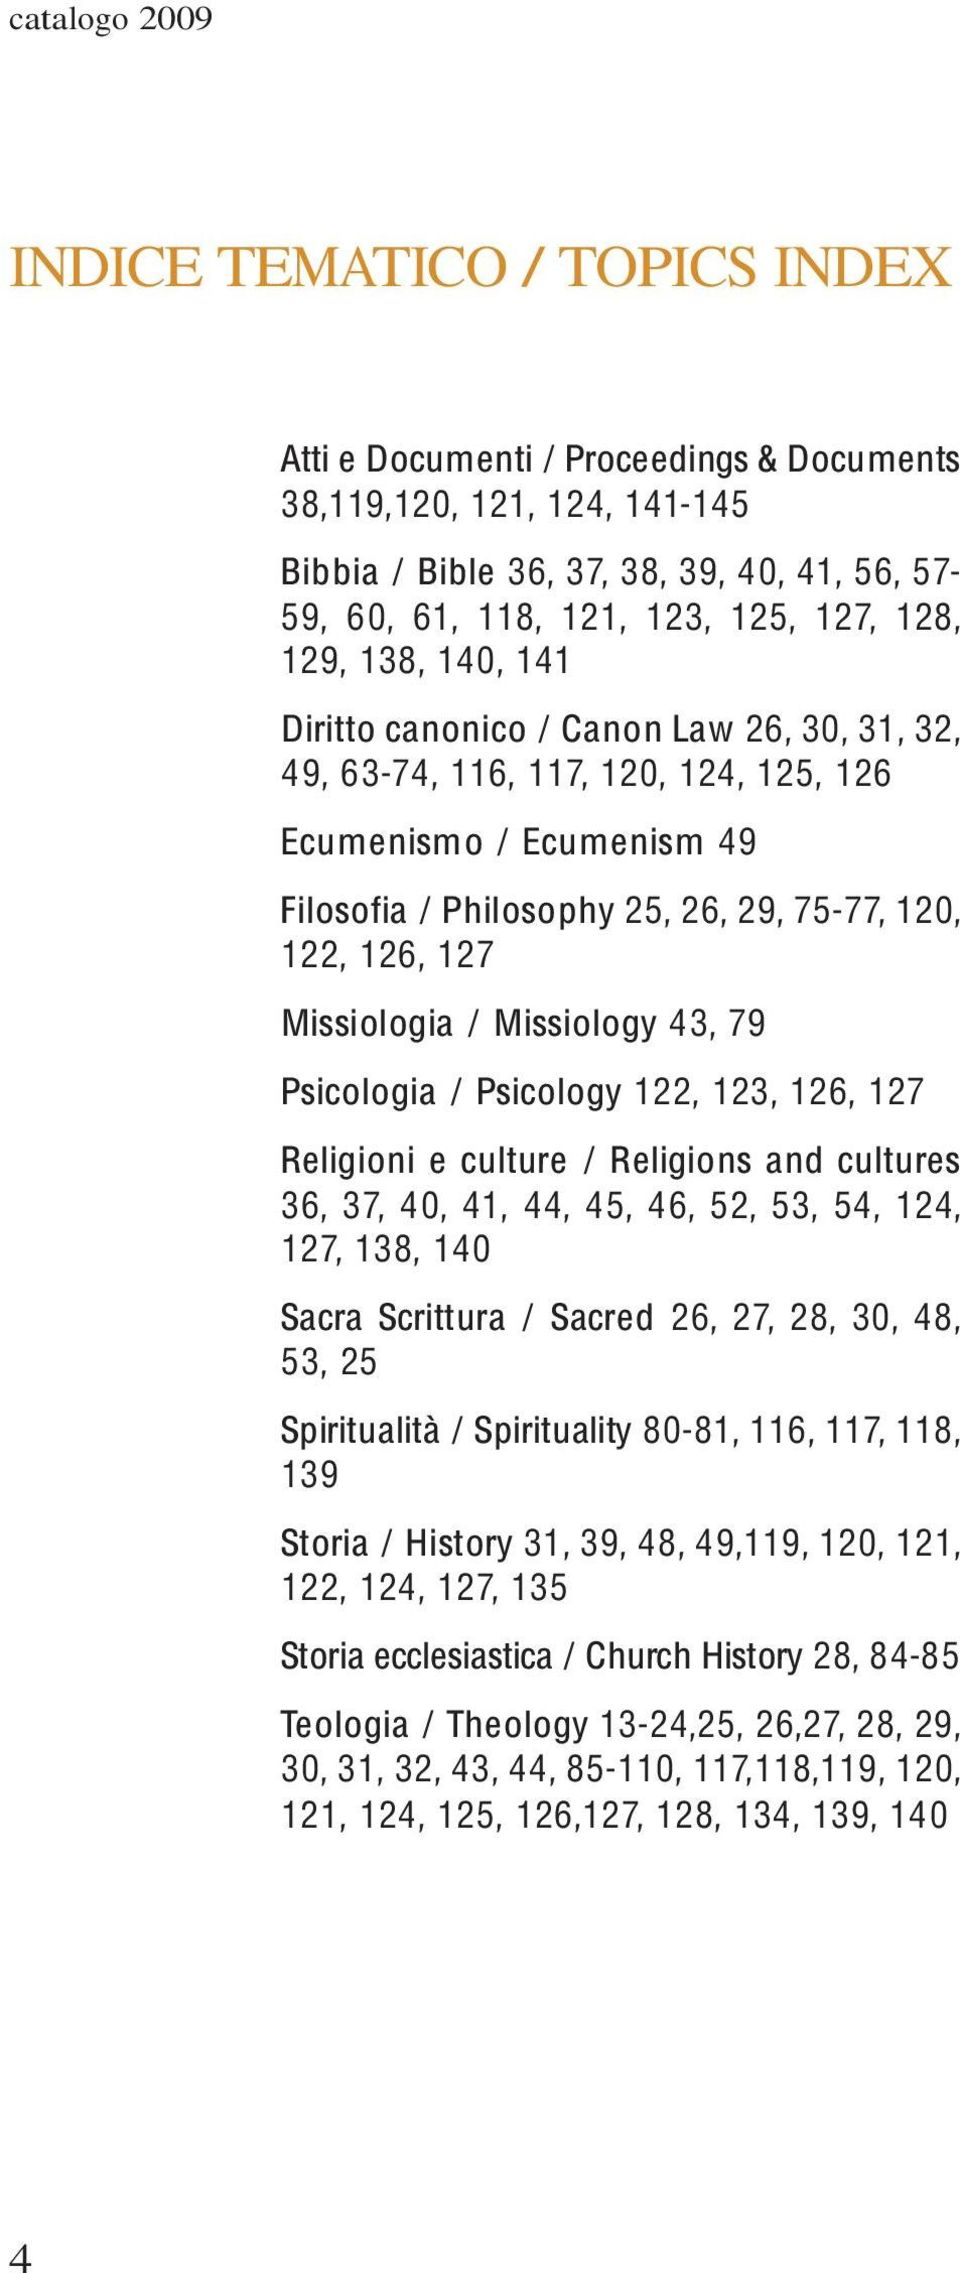 127 Missiologia / Missiology 43, 79 Psicologia / Psicology 122, 123, 126, 127 Religioni e culture / Religions and cultures 36, 37, 40, 41, 44, 45, 46, 52, 53, 54, 124, 127, 138, 140 Sacra Scrittura /